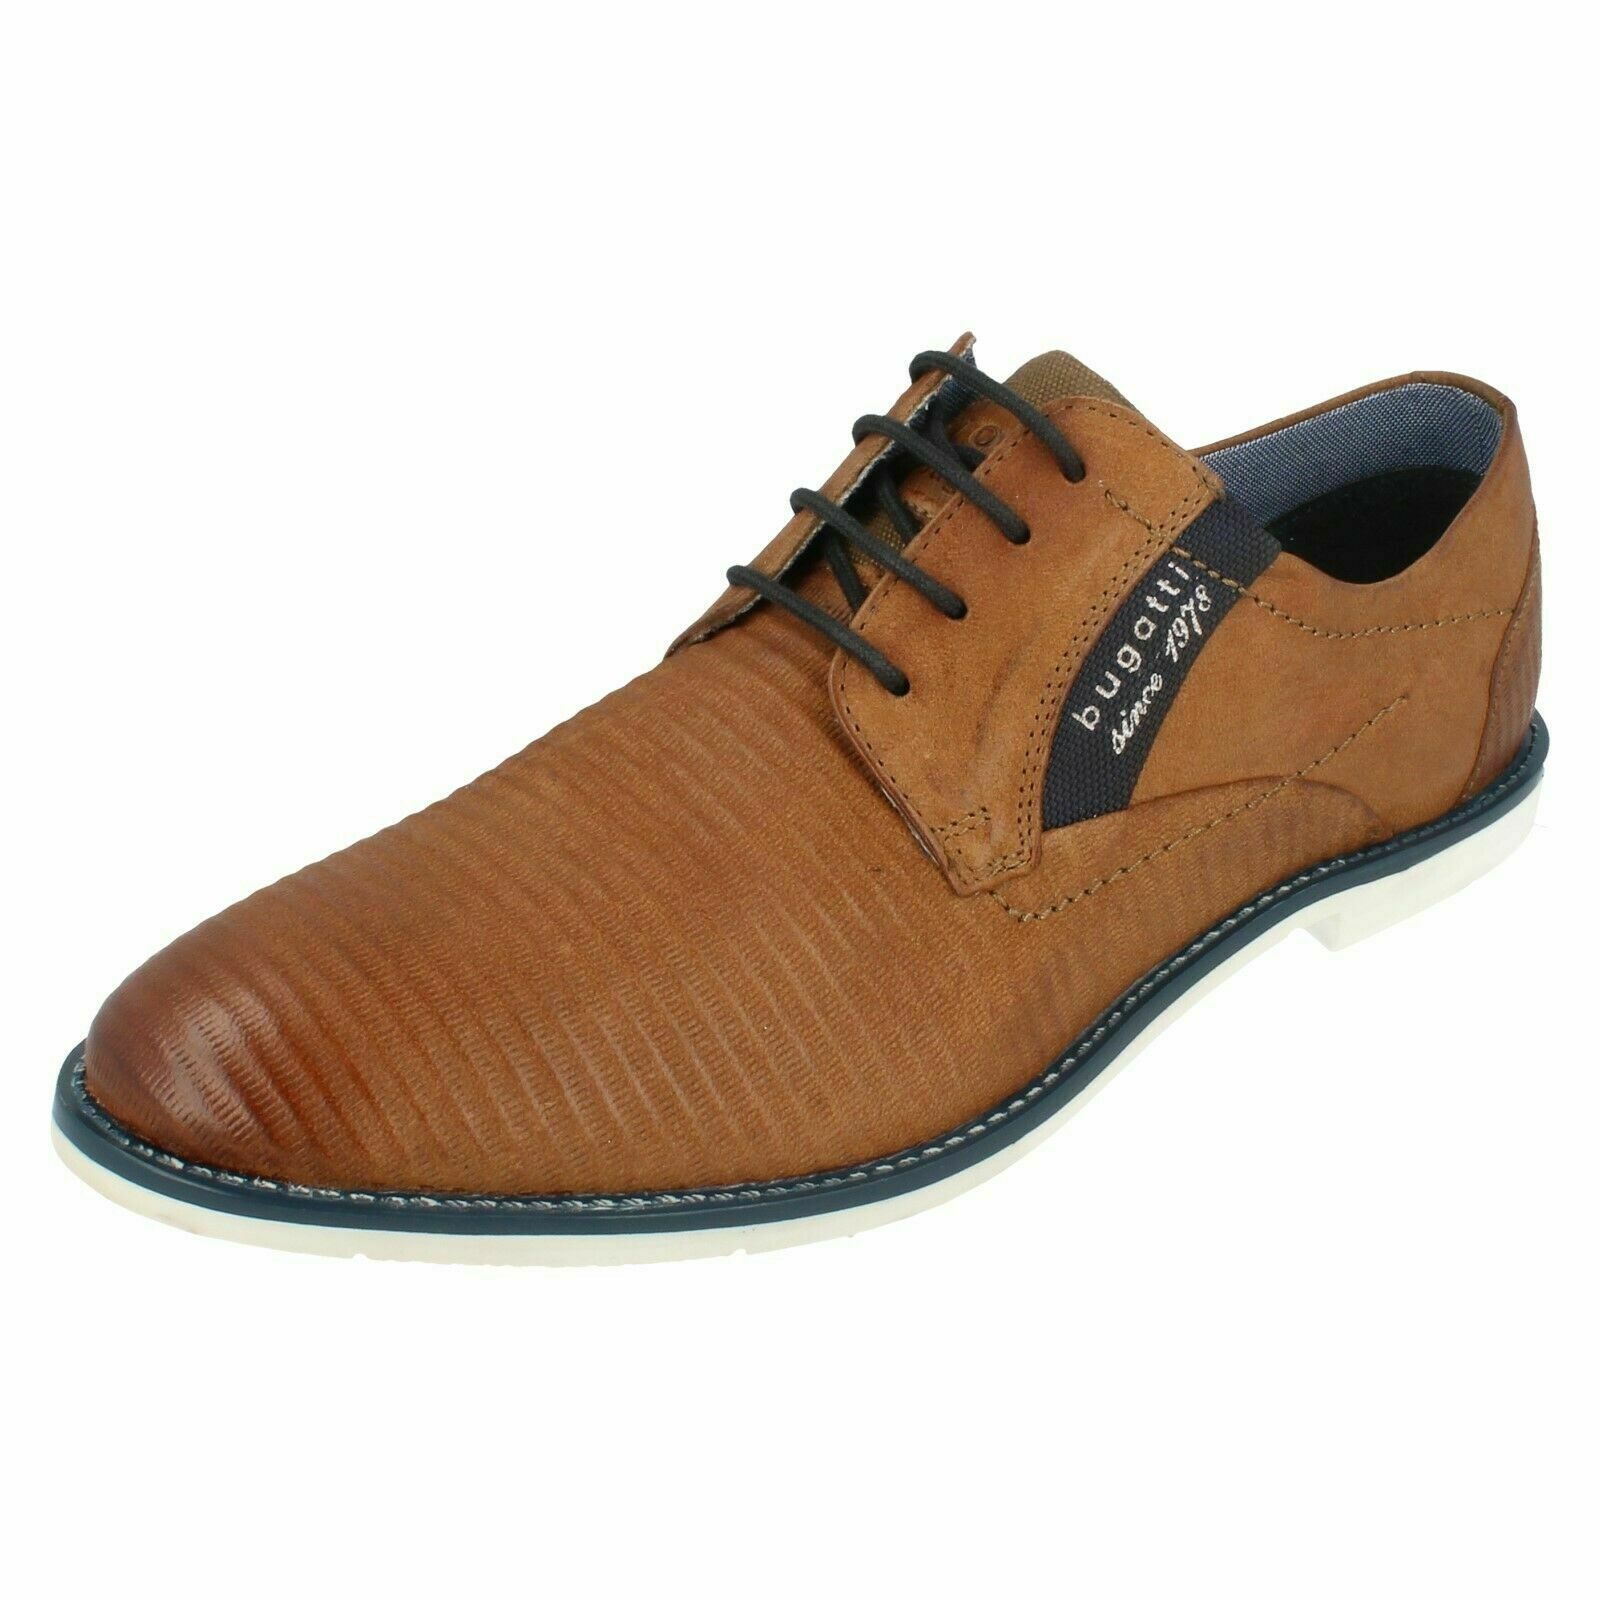 313-11117-3500- Mens Bugatti Cognac & 039; Used Look & 039; Leather Lace Up schuhe